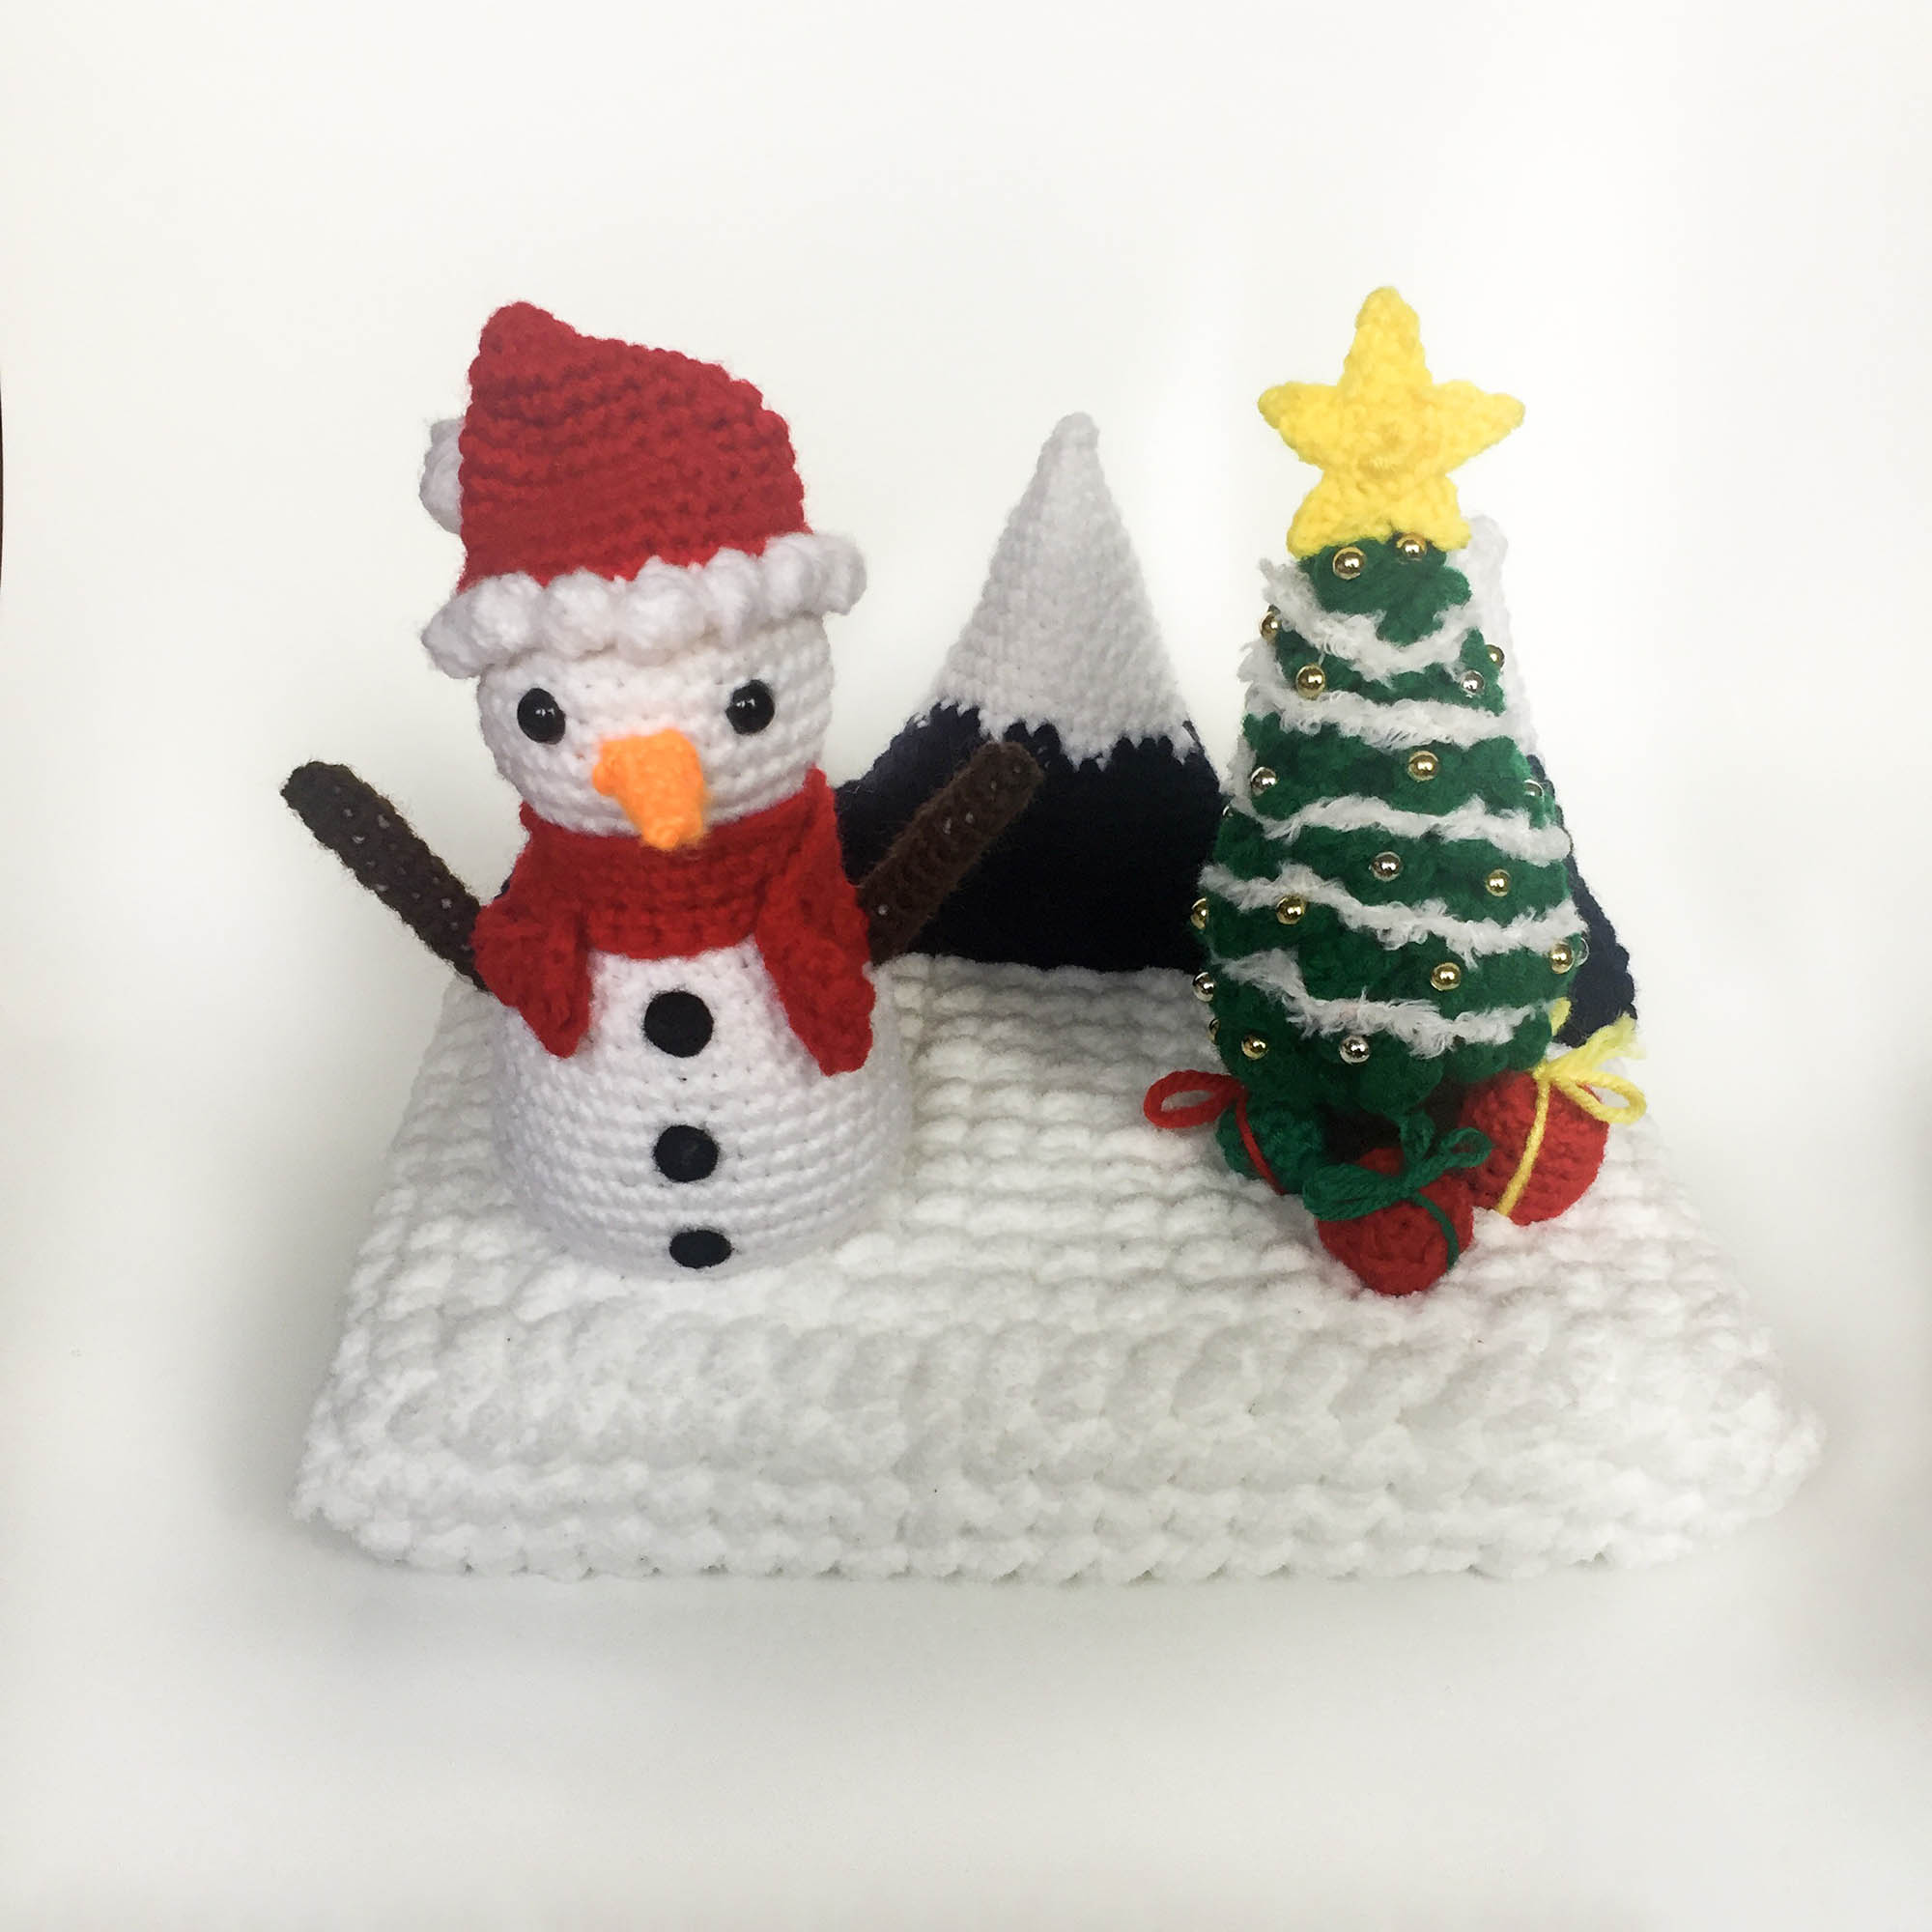 Amigurumi Pattern for Crochet Snowman with Christmas tree | 2000x2000